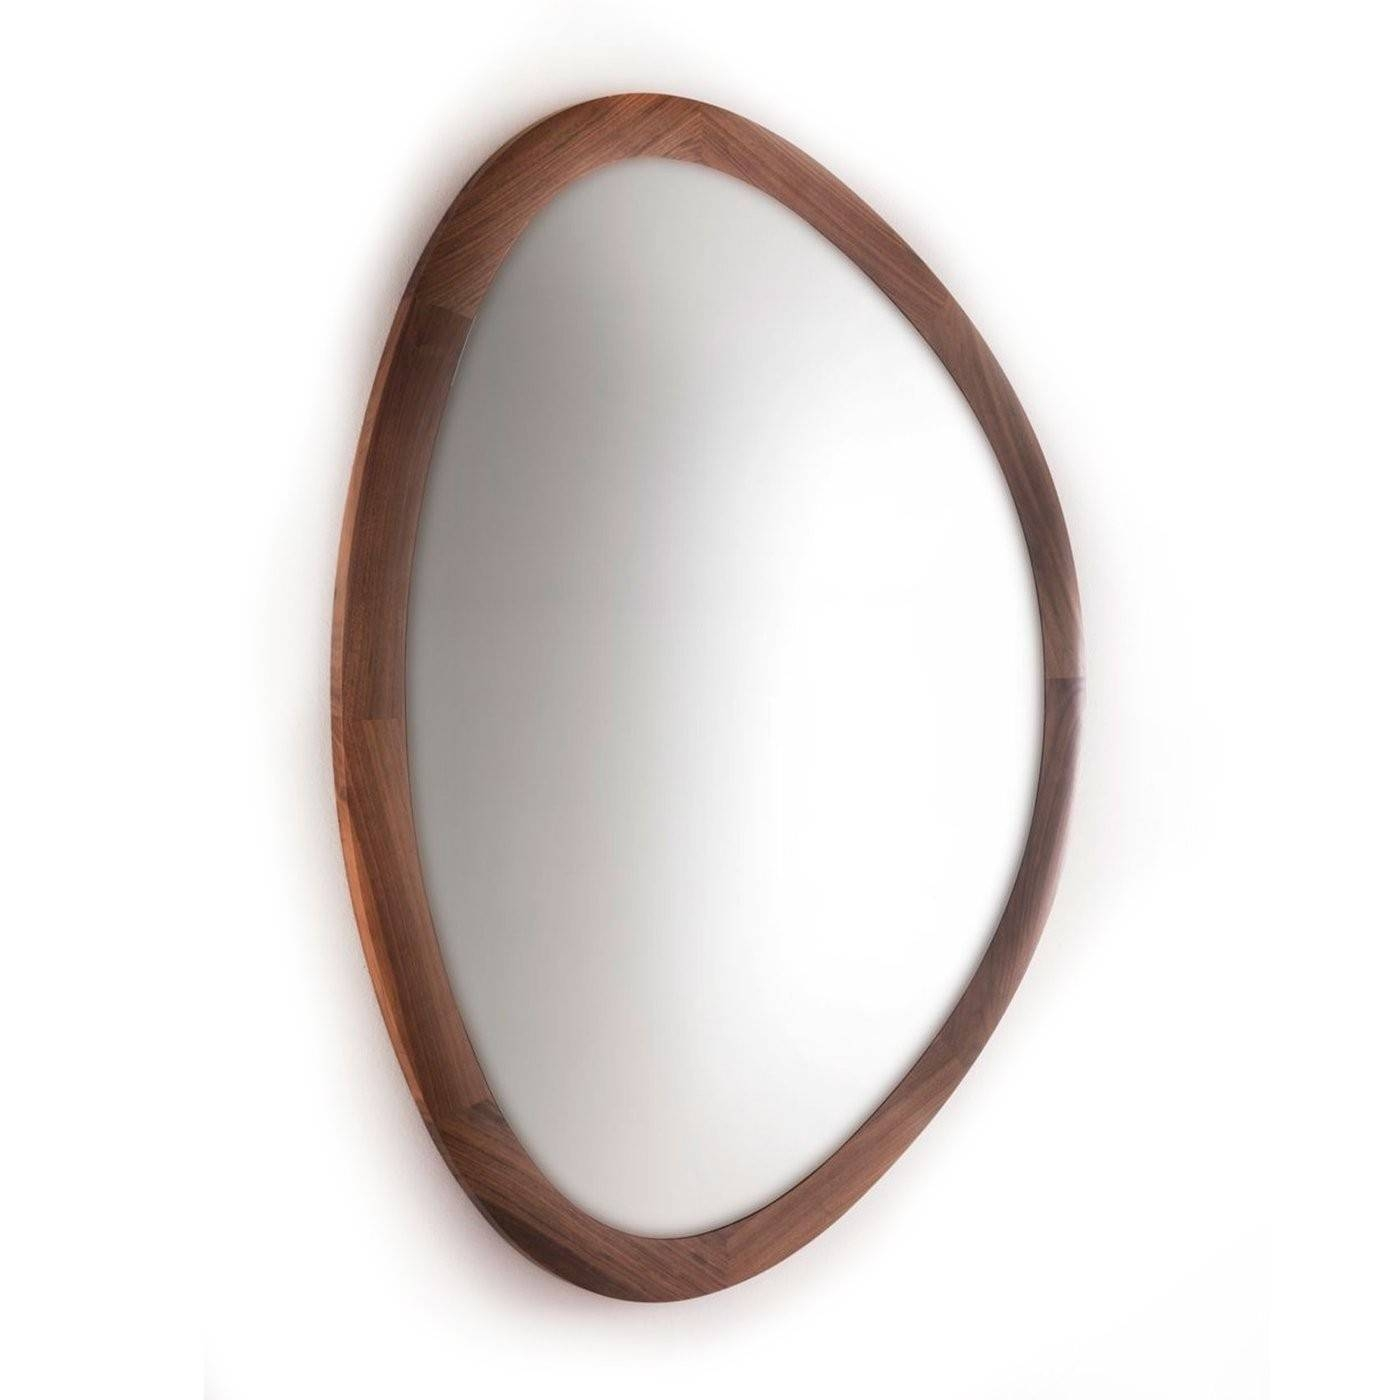 Modern Contemporary Mirrors | Heal's inside Silver Oval Wall Mirrors (Image 15 of 25)